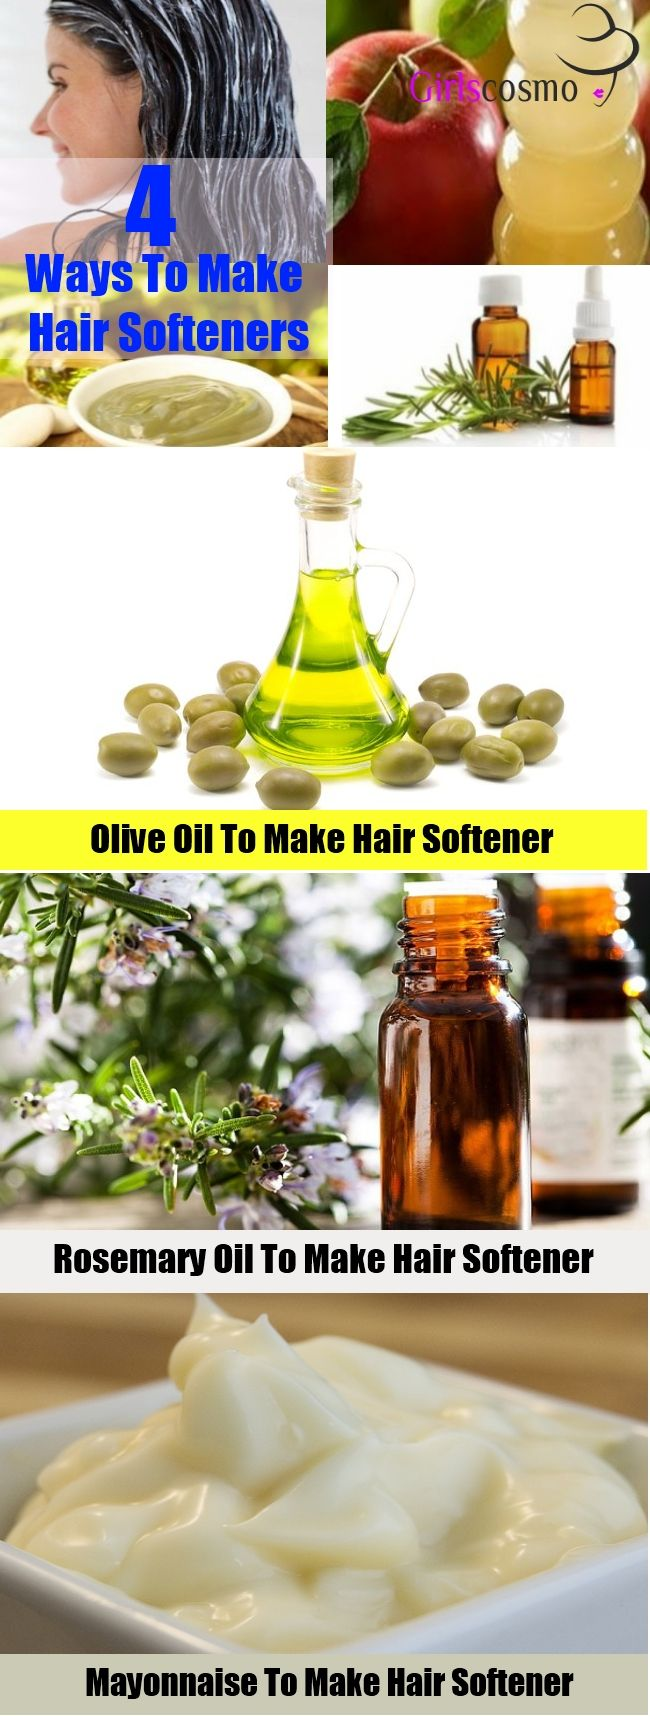 4 Tips To Make Hair Softeners At Home